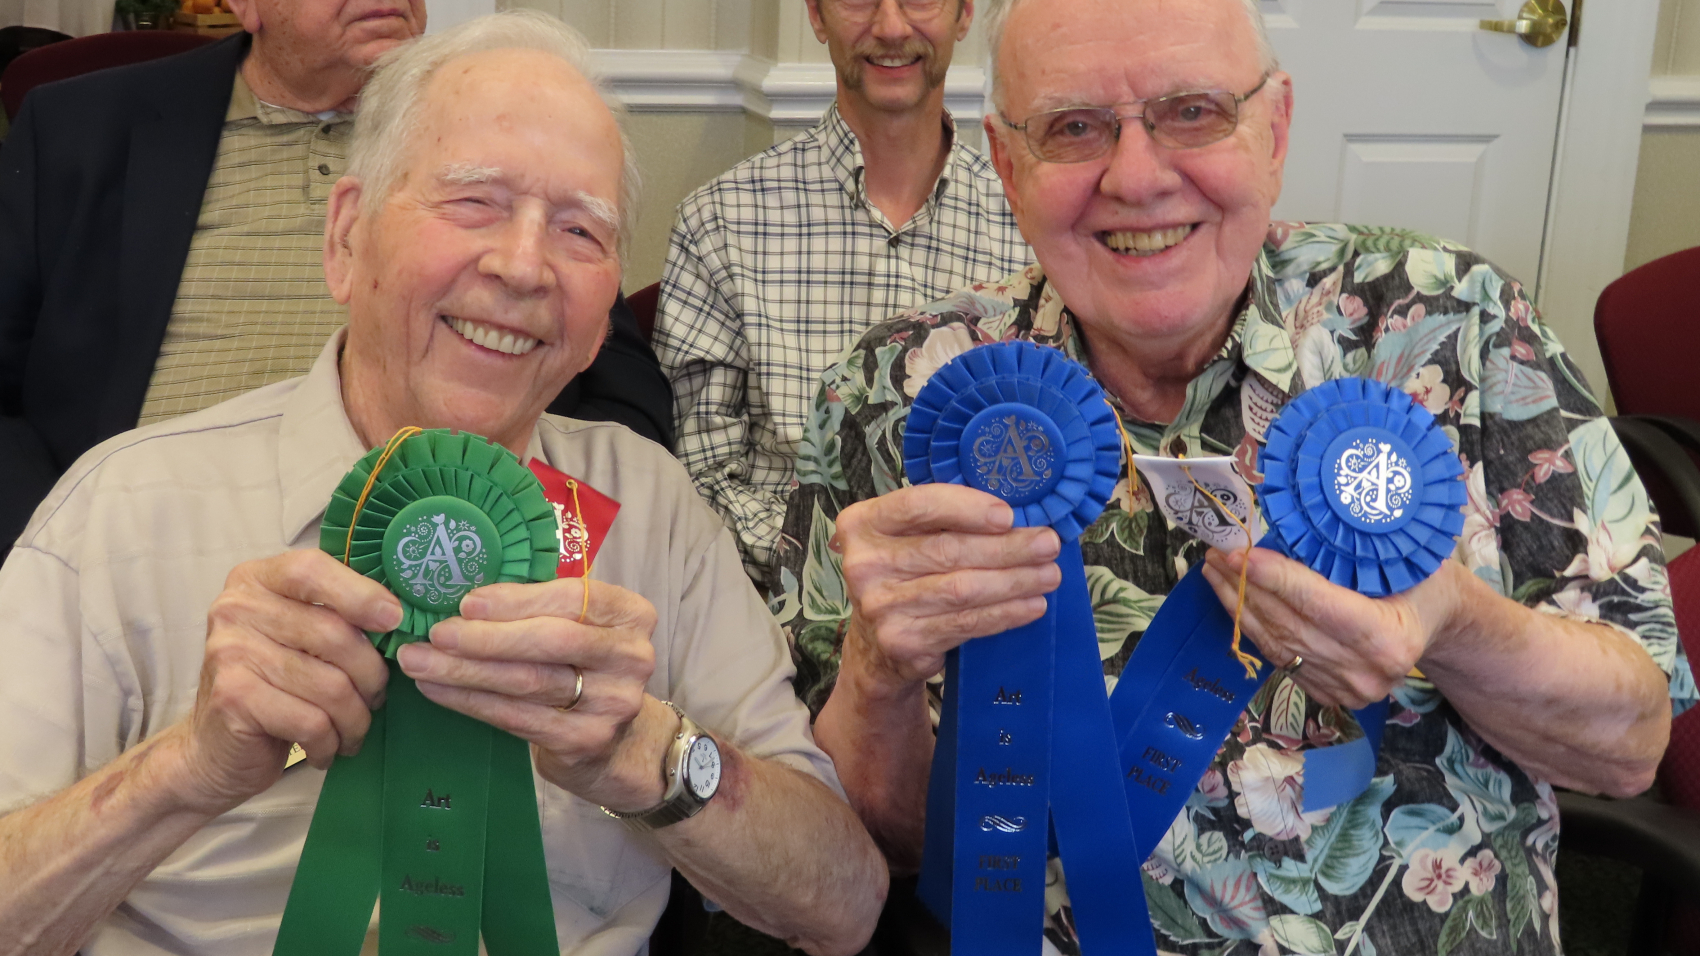 Bill Walter (L) and Ed Duman (R), show off their ribbons. Ed is the winner in the amateur Christmas category, and Bill was a Judge's choice winner in the amateur division. Both men live at Aberdeen Village.